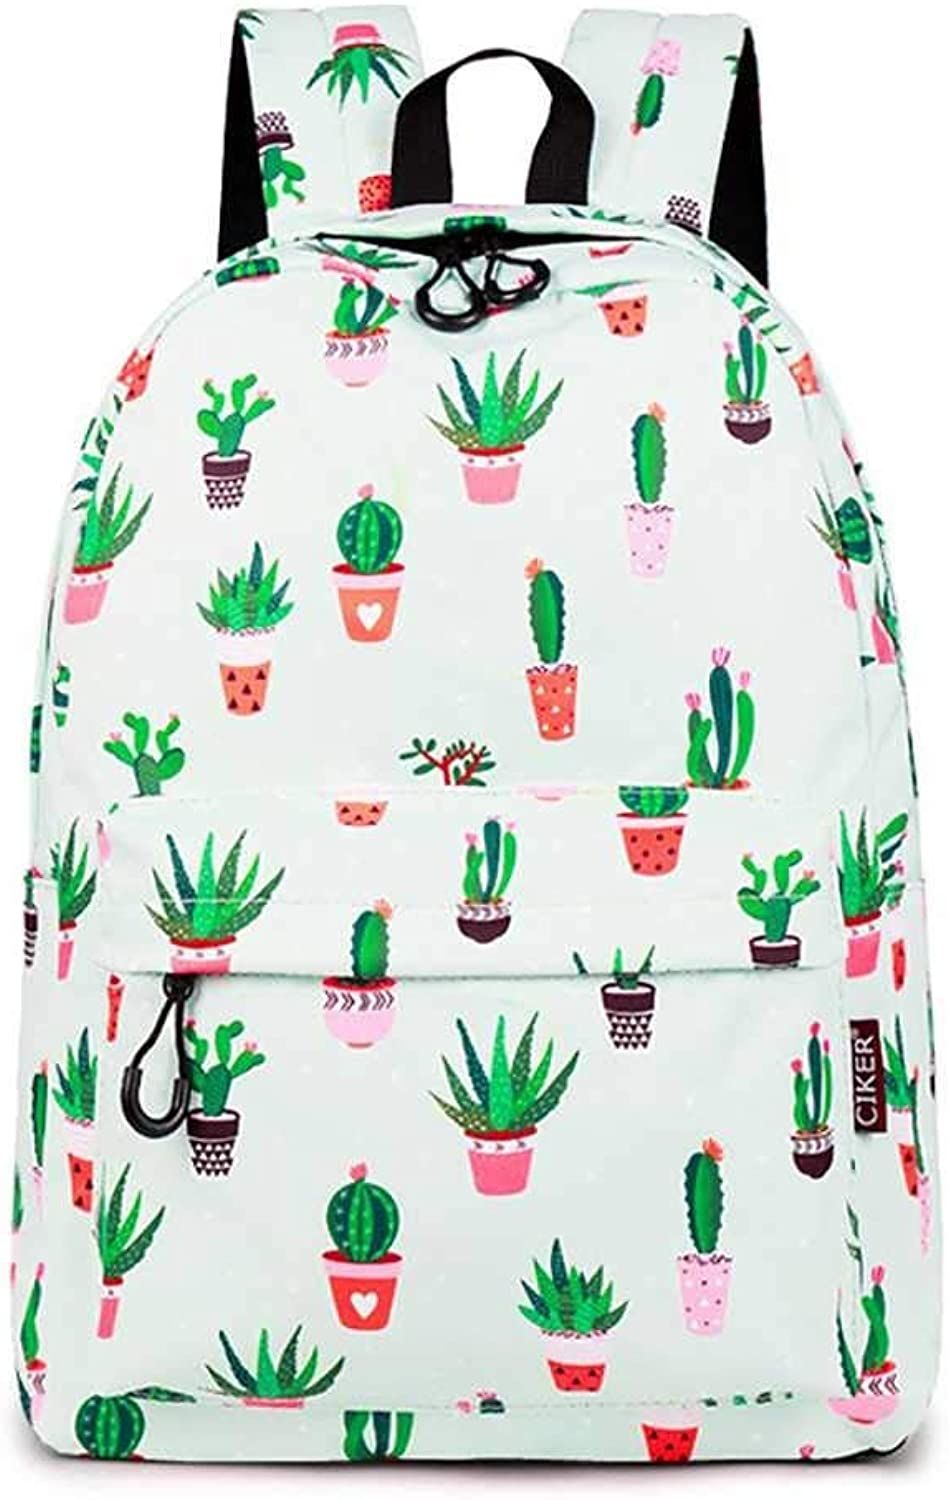 goldt1 Student Backpack Cactus Pattern 16.8L Print Zipper Casual Waterproof Notebook Youth Travel Large Capacity Female Student Schoolbag (color   1)